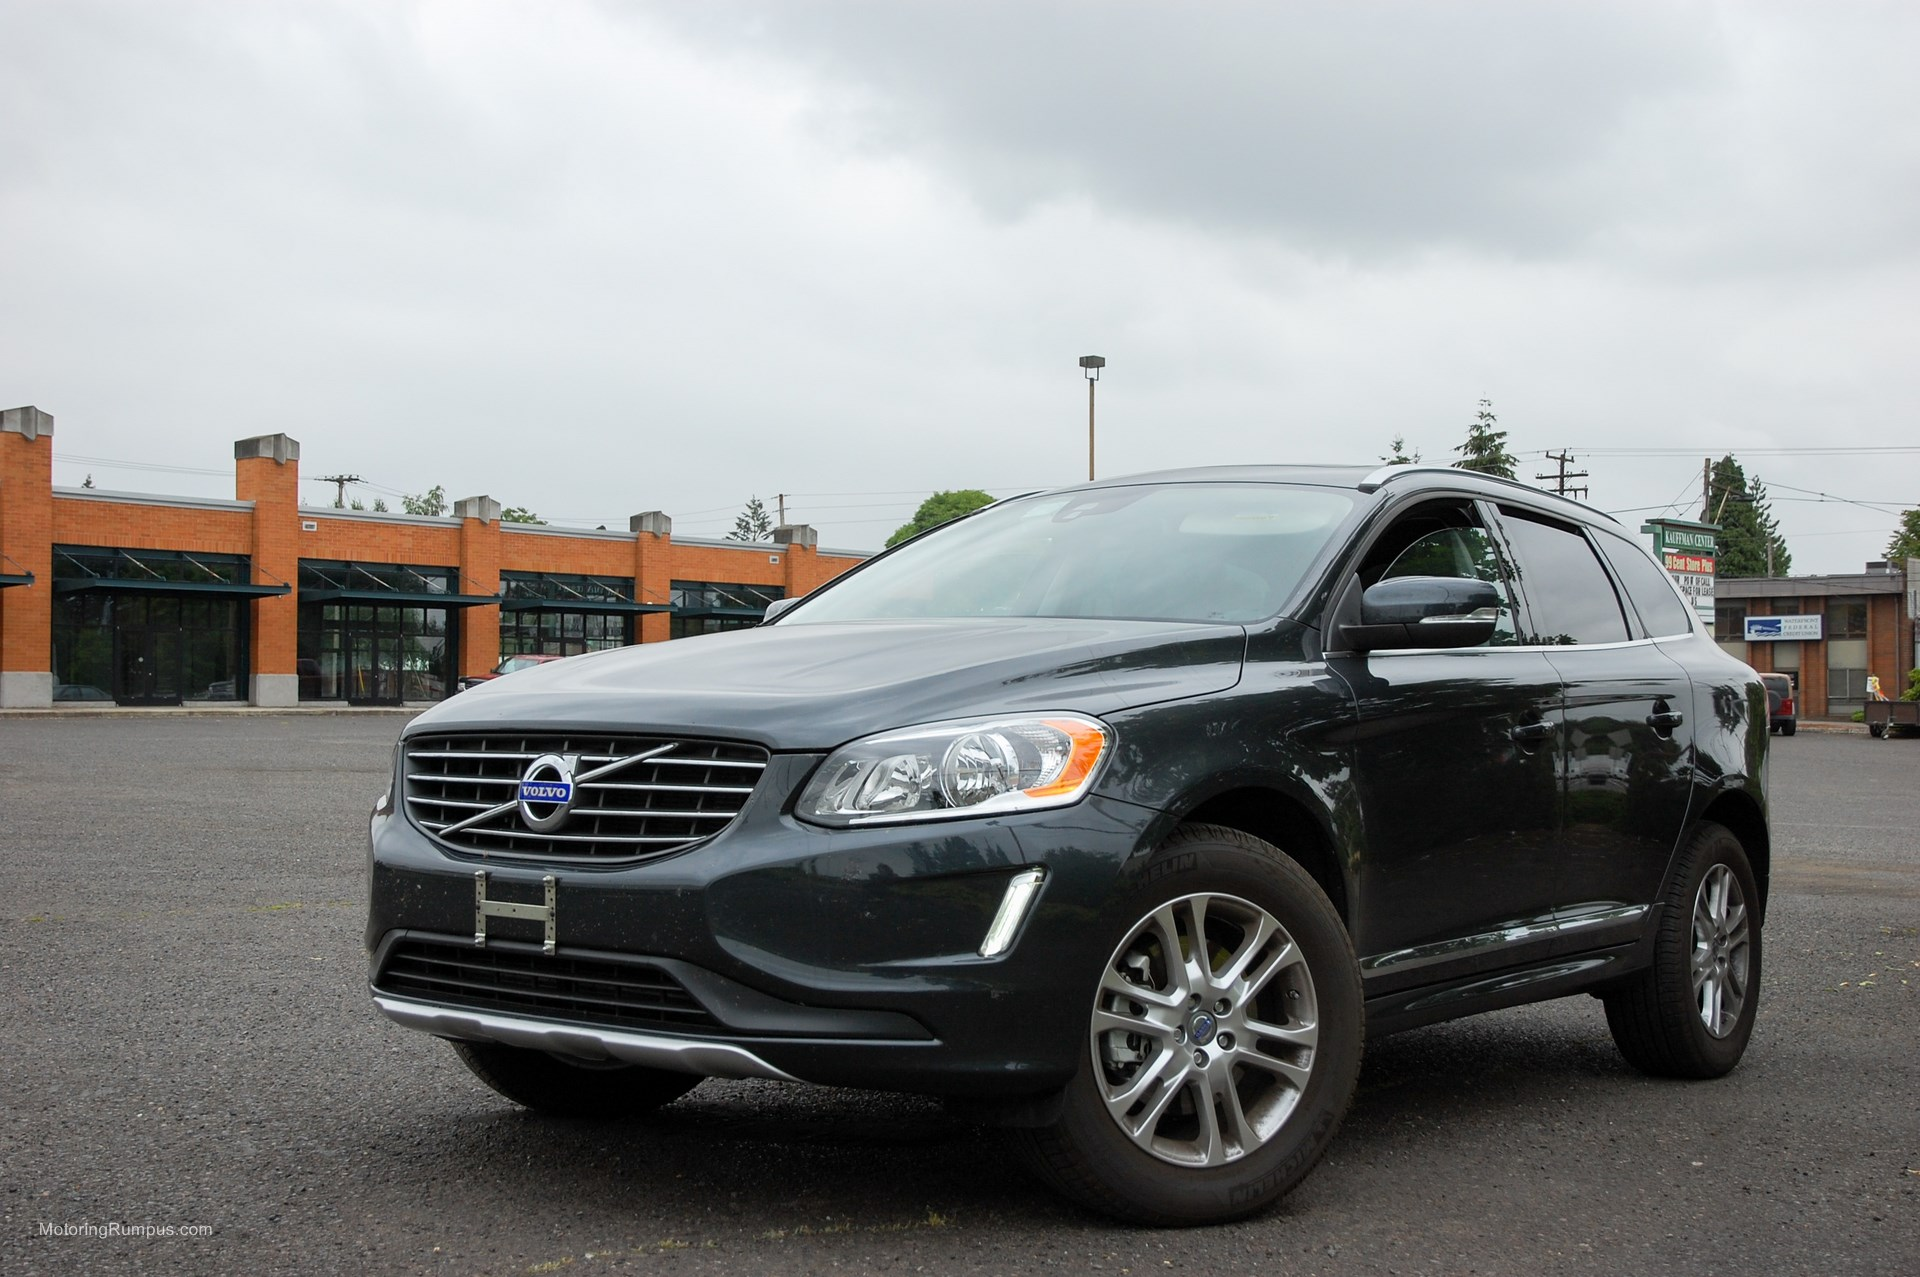 2015 volvo xc60 rear and side view volvo xc60 gas mileage 2015 volvo